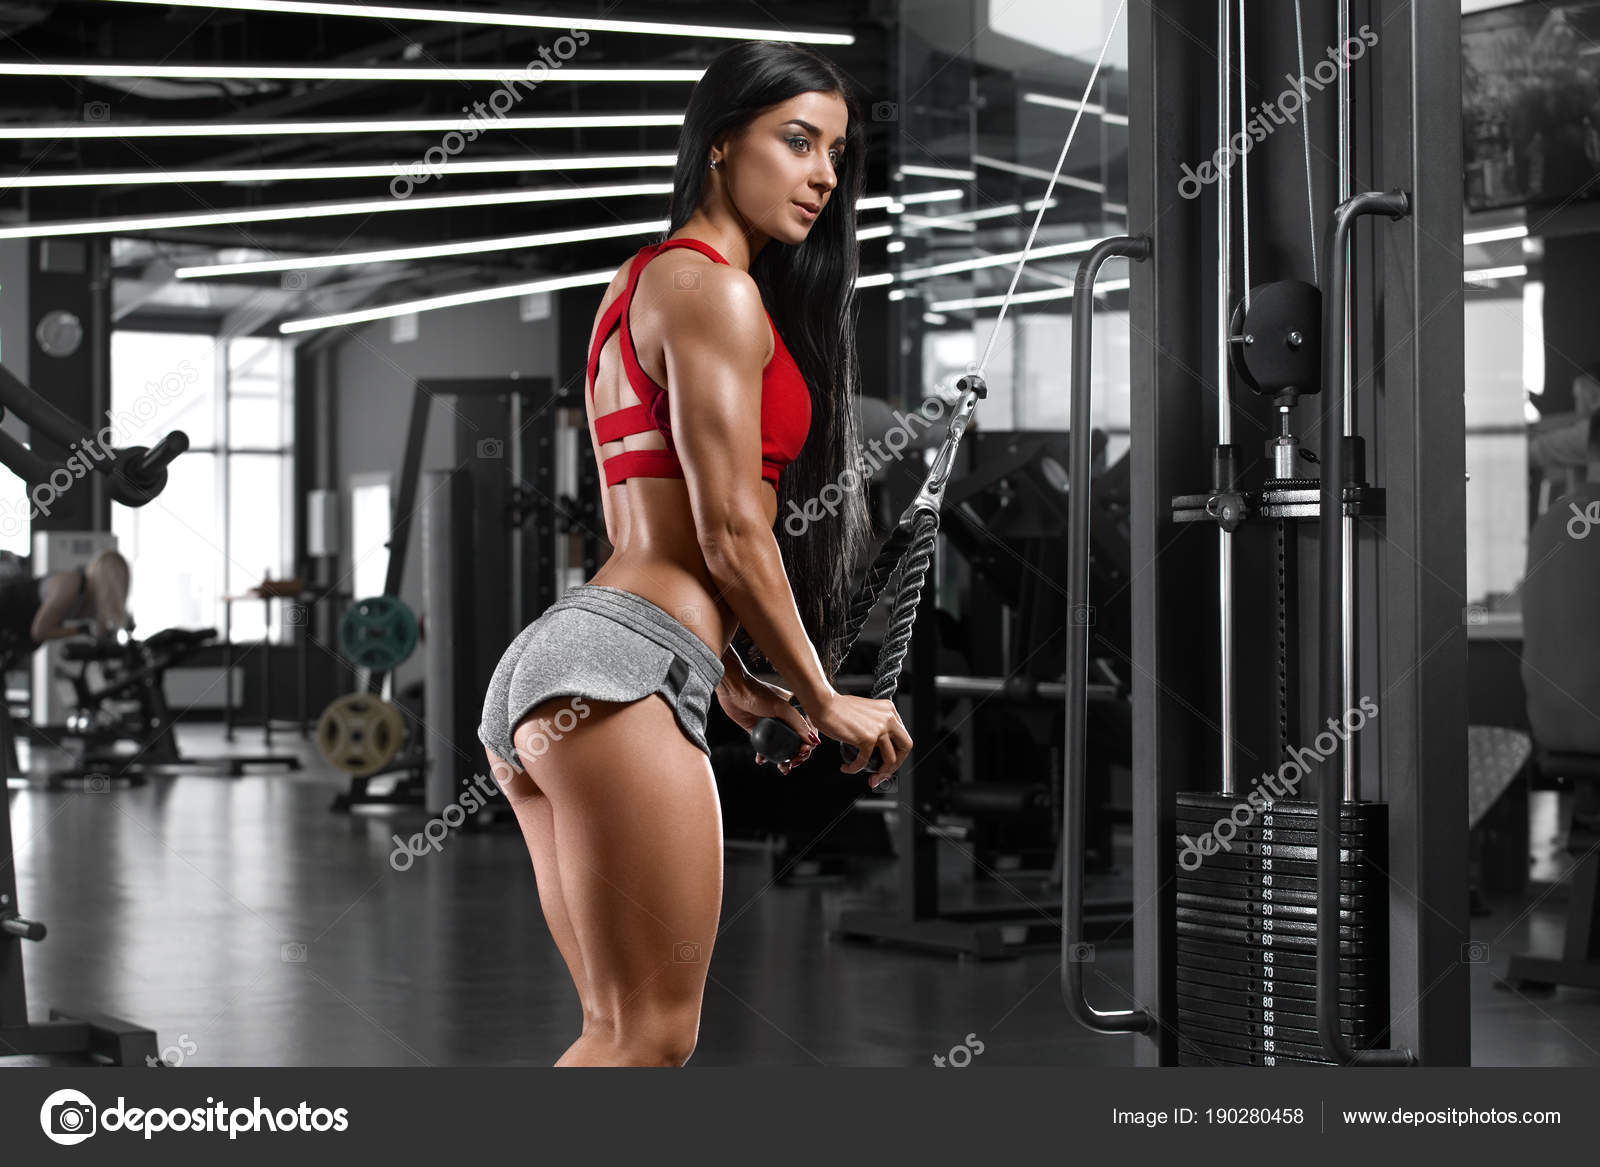 Sexy Athletic Girl Workout Gym Fitness Woman Exercising Sexy